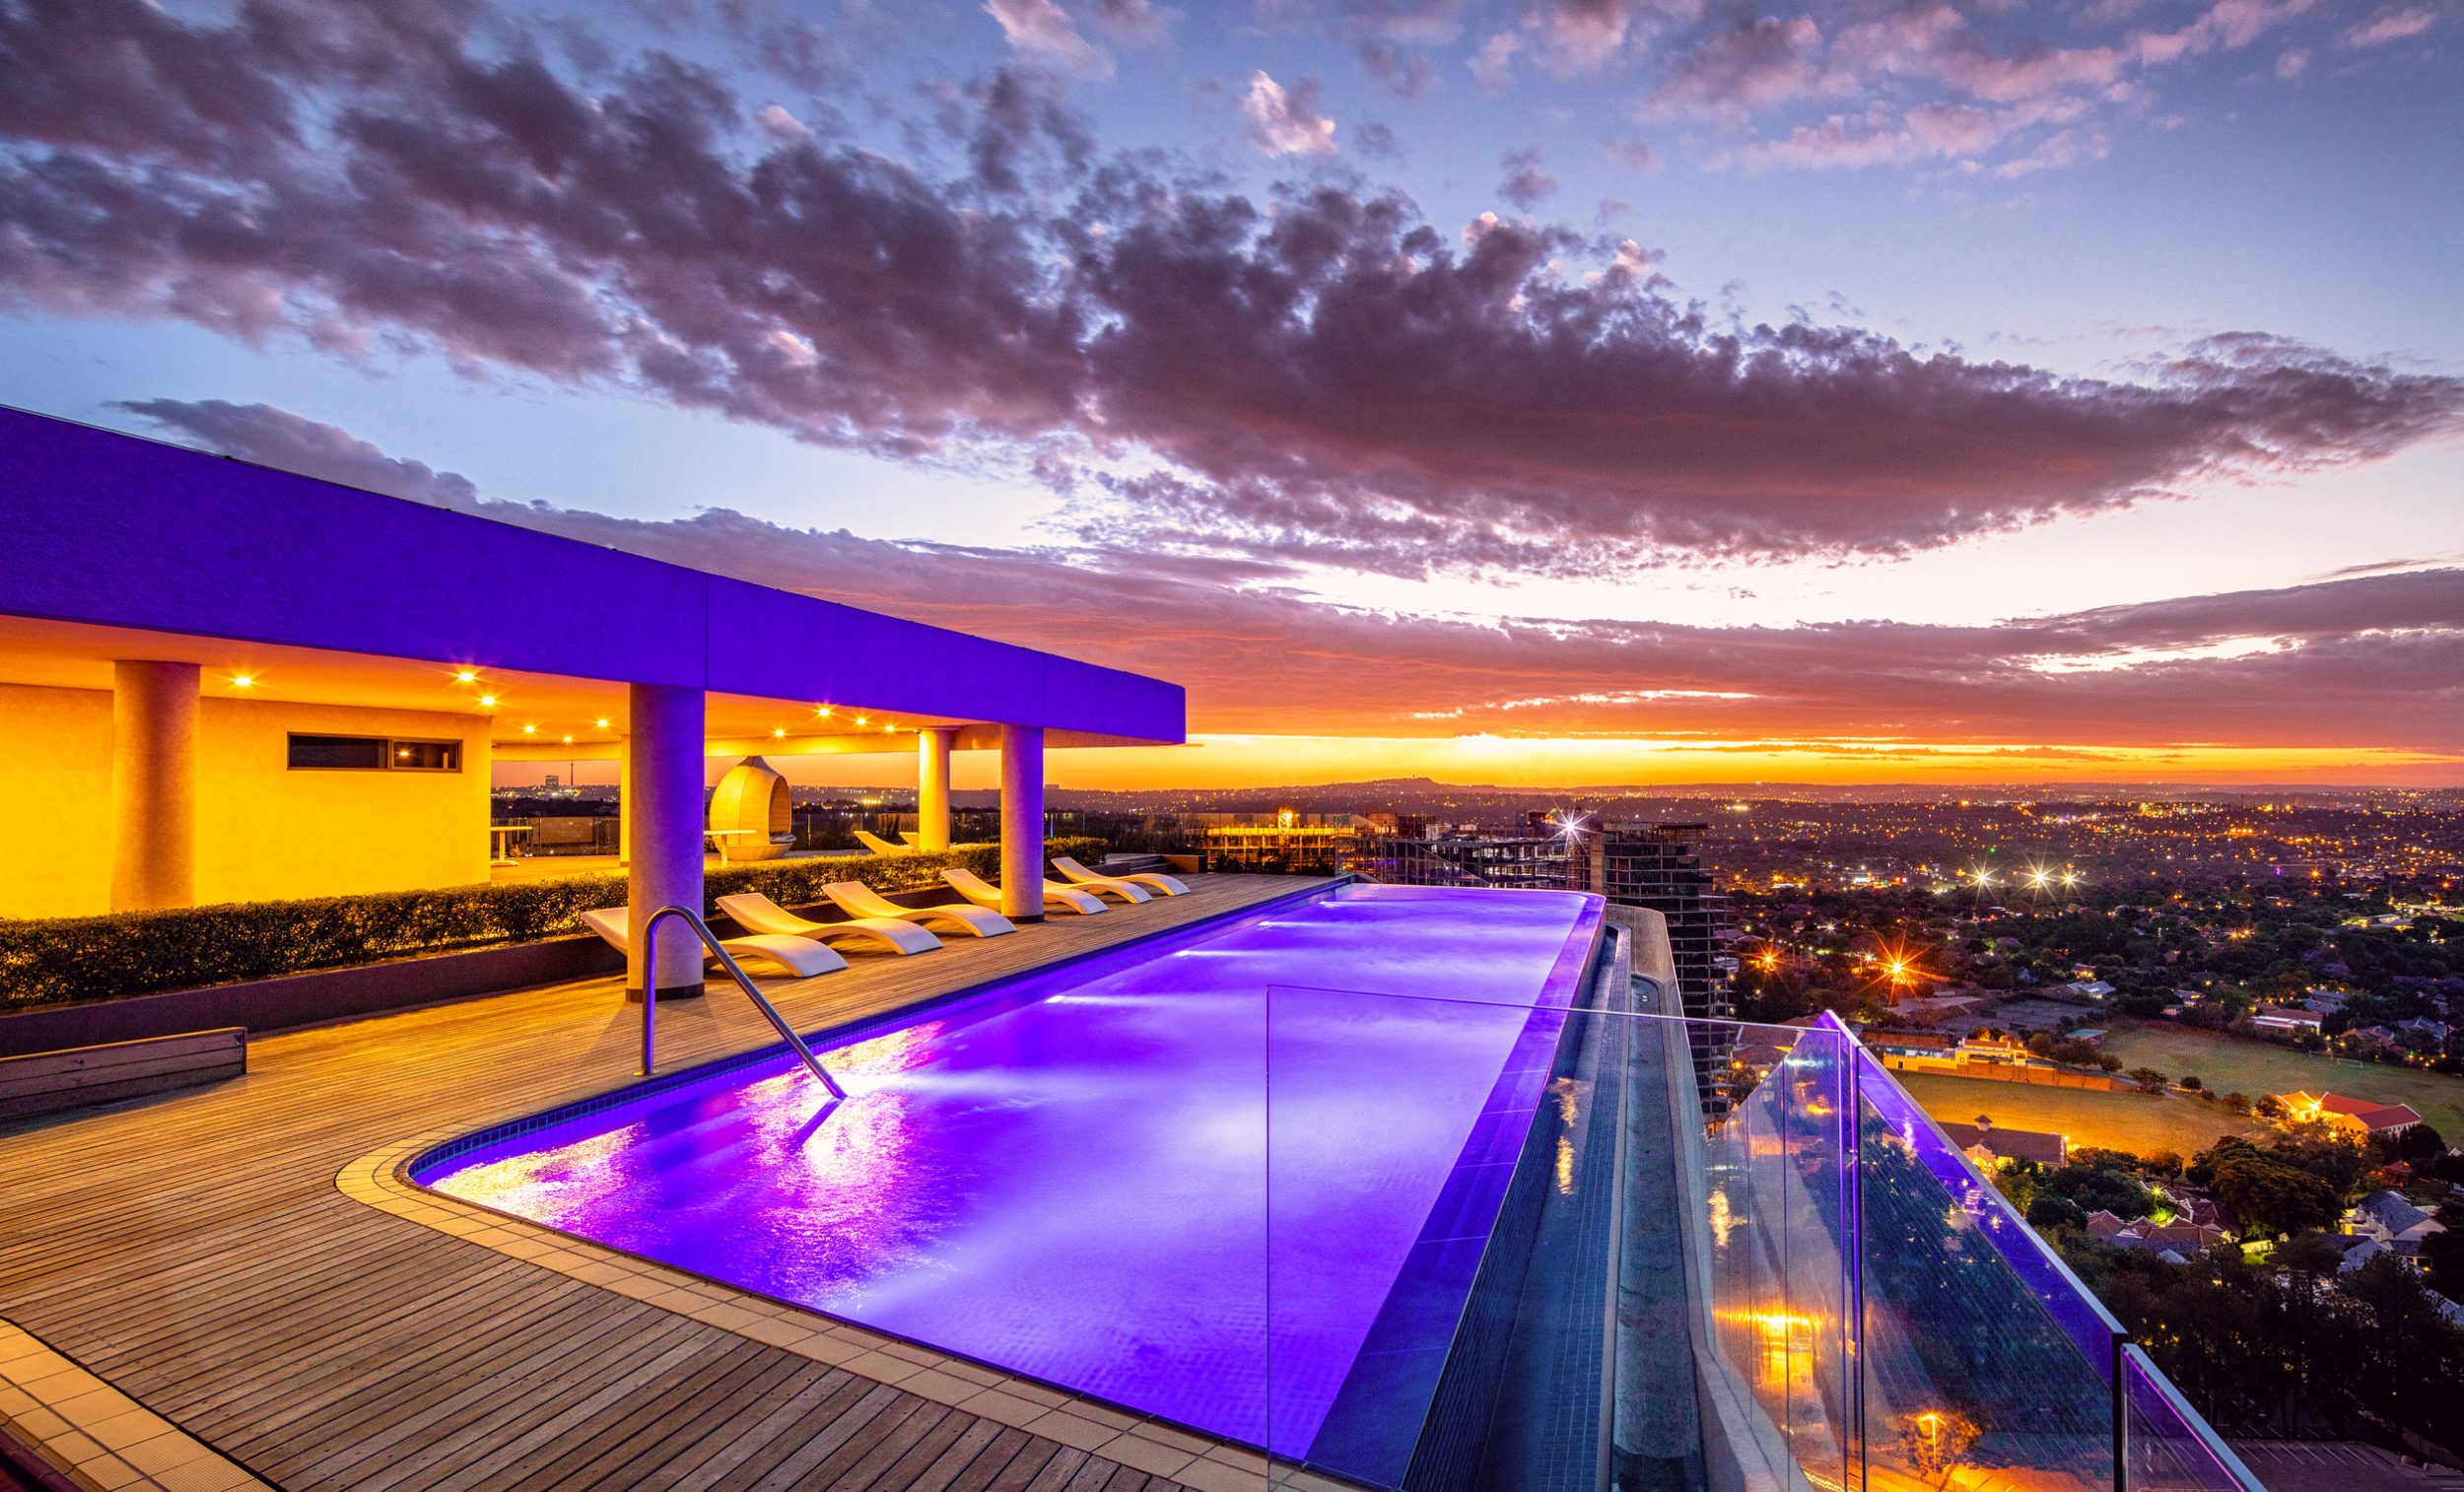 Central Square Sandton leads the way in luxury living